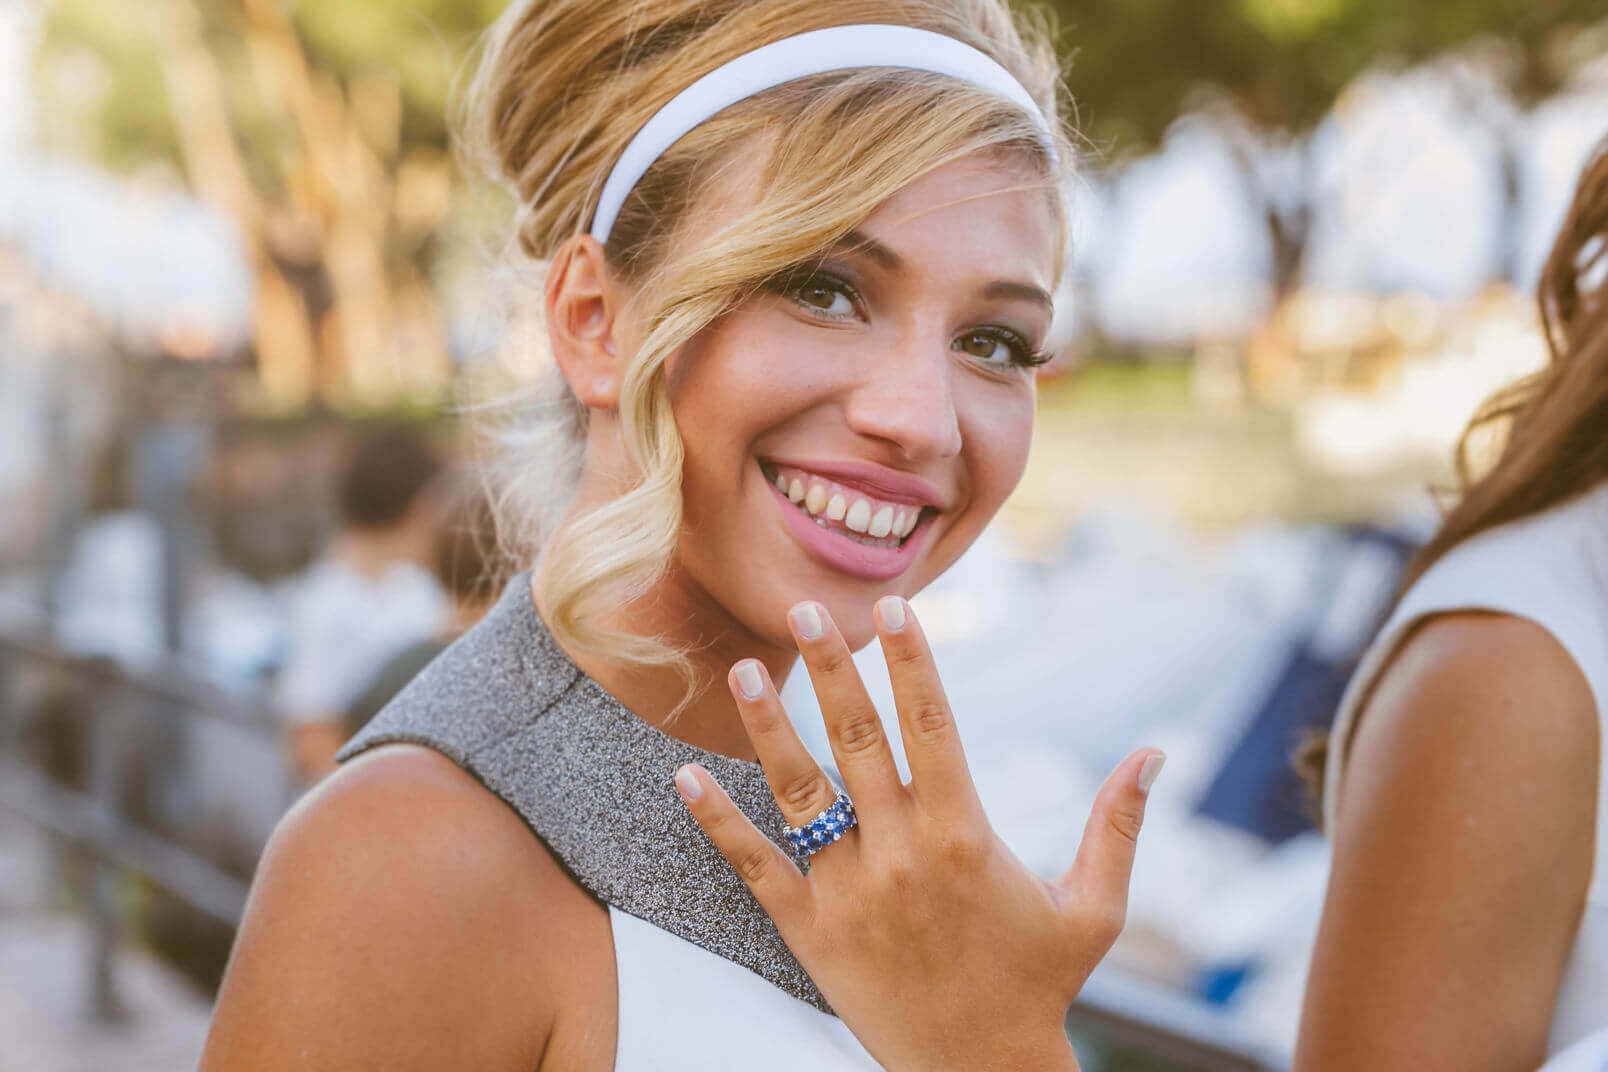 A 1960s mood wedding: the bride showing her ring with sapphires and diamonds by Sabbadini, Milan, Via Montenapoleone.